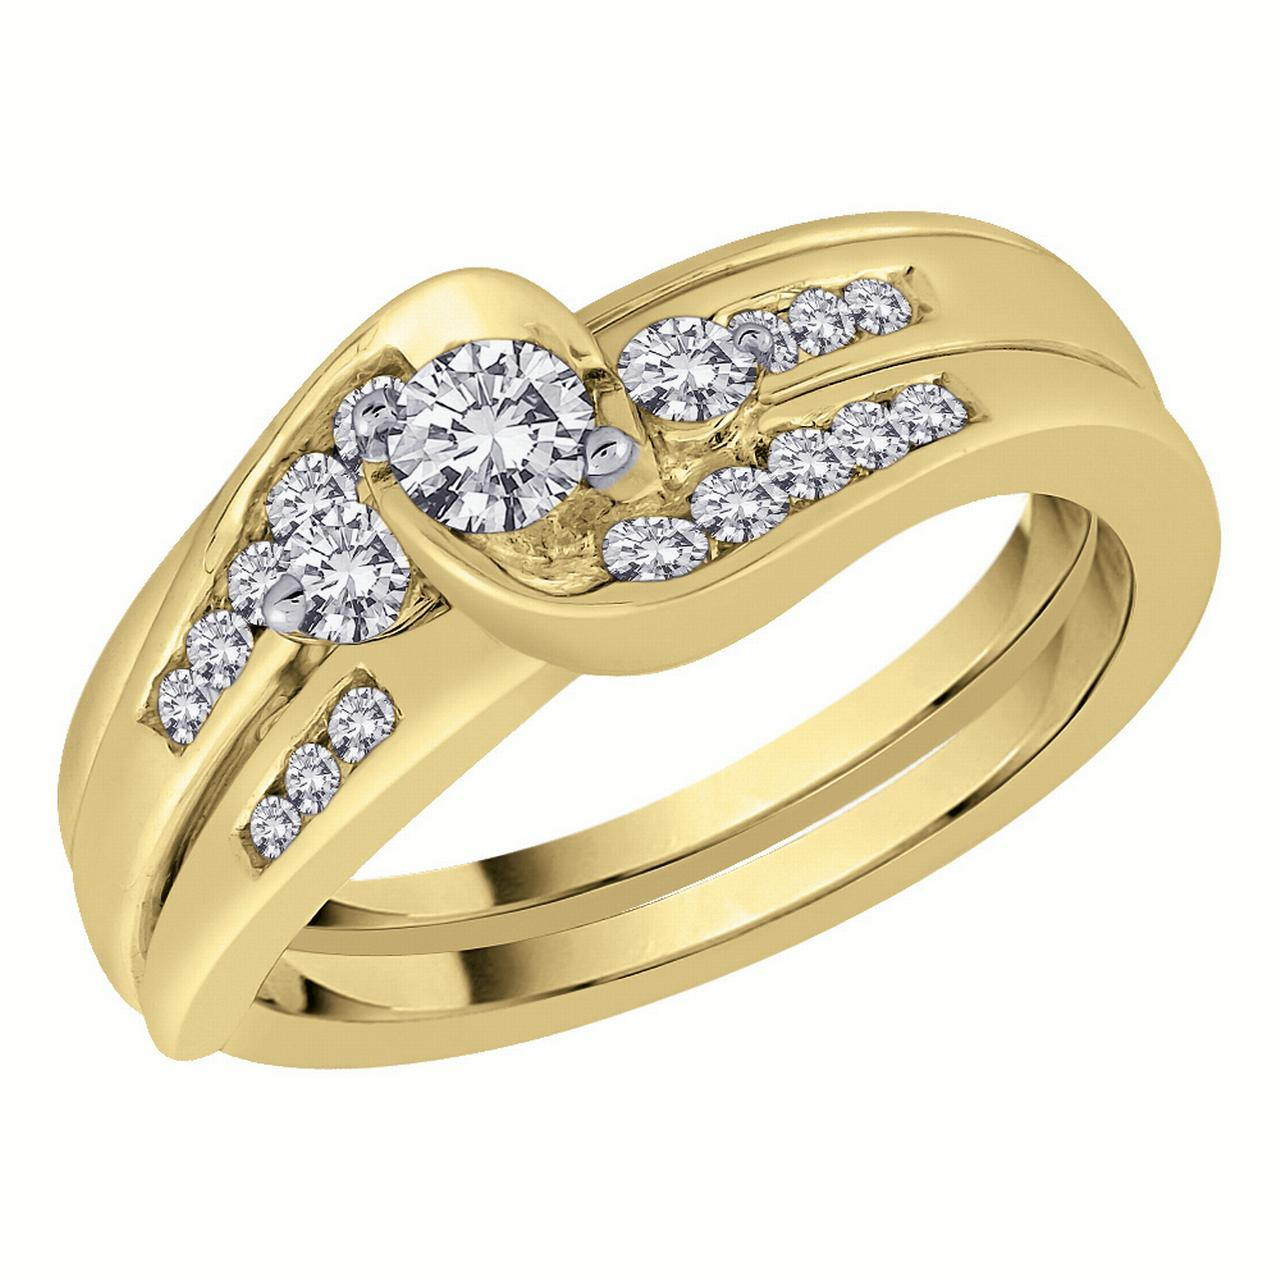 10K Yellow Gold, Diamond Bridal Engagement Set (1 2 cttw) by Katarina